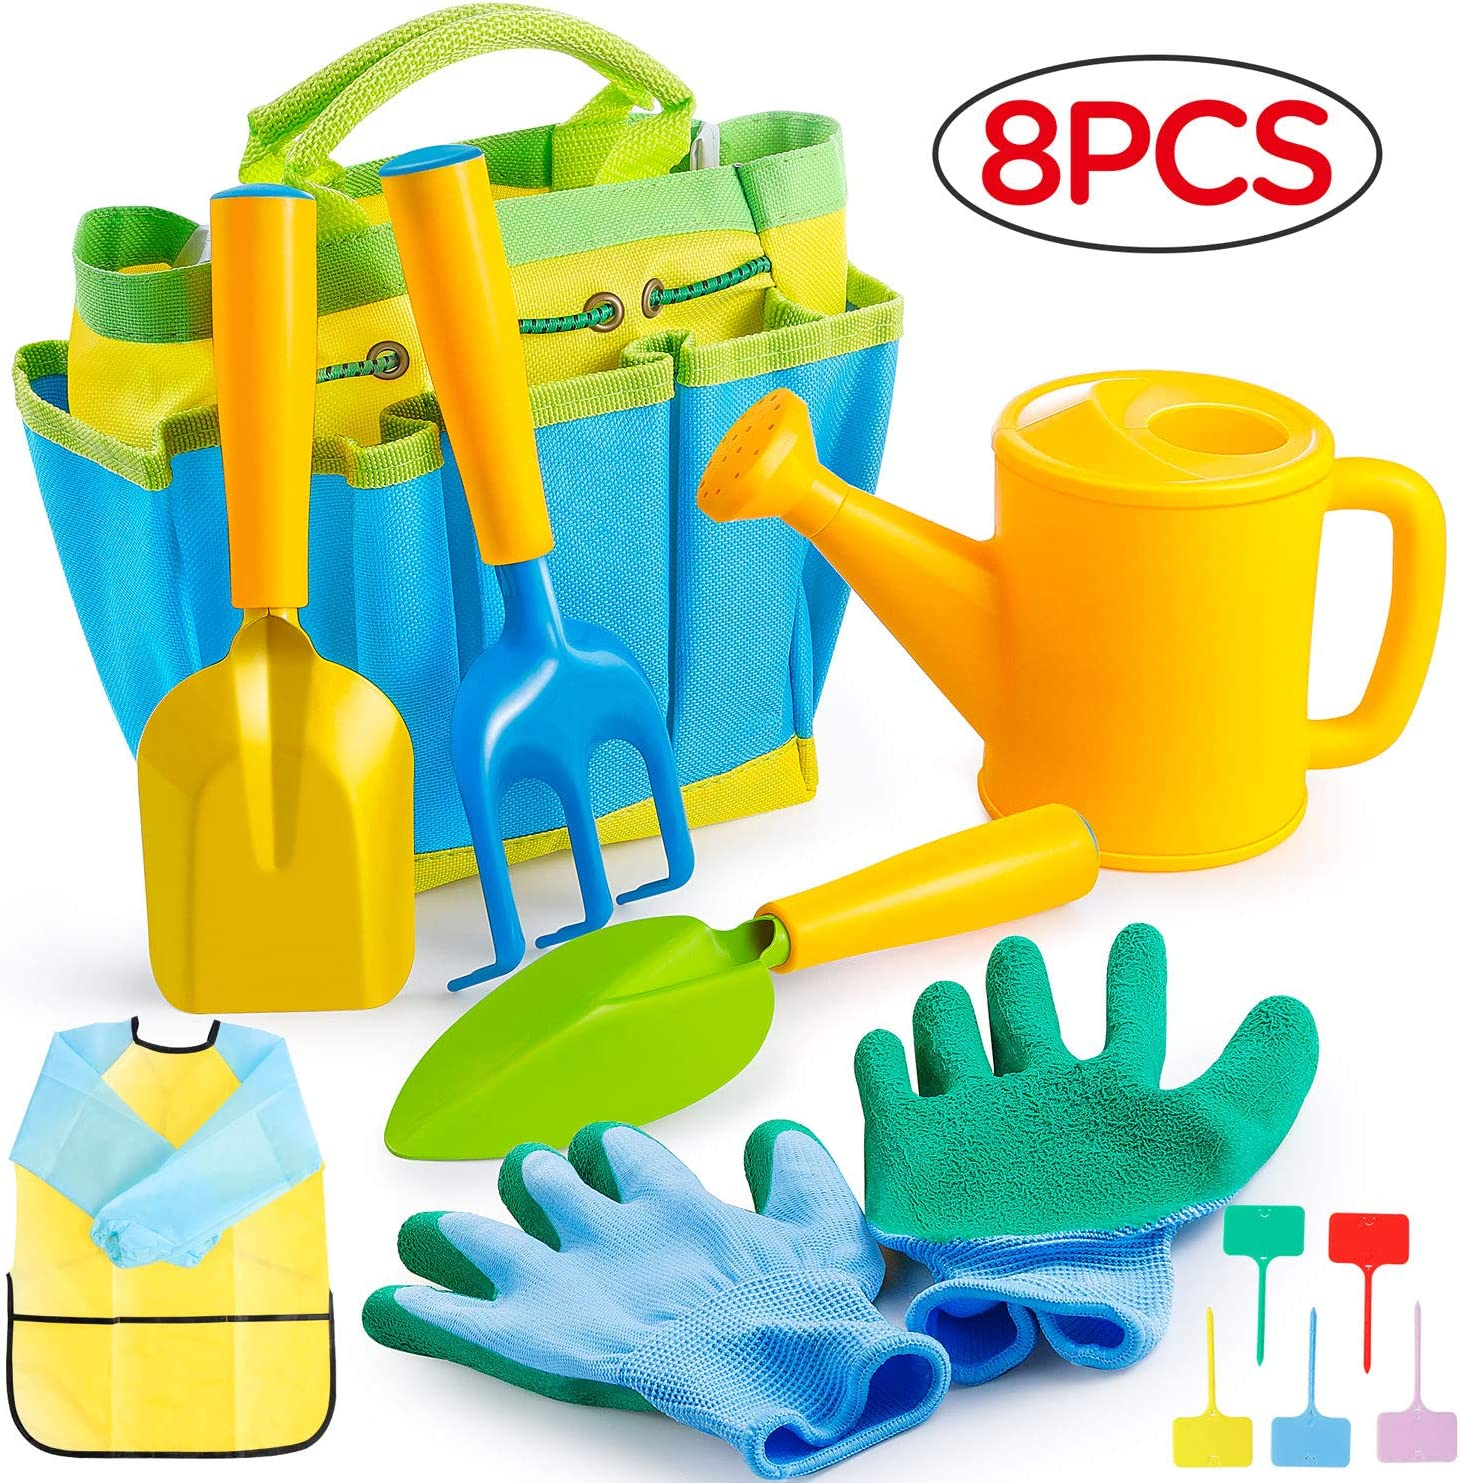 Gimars Sturdy Metal Kids Gardening Tools Gift for Toddler 8 PCS Kids Garden Set Including Watering Can, Shovel, Trowel, Gardening Gloves, Rake, Kids Smock, Garden Placard All in One Garden Tote Bag